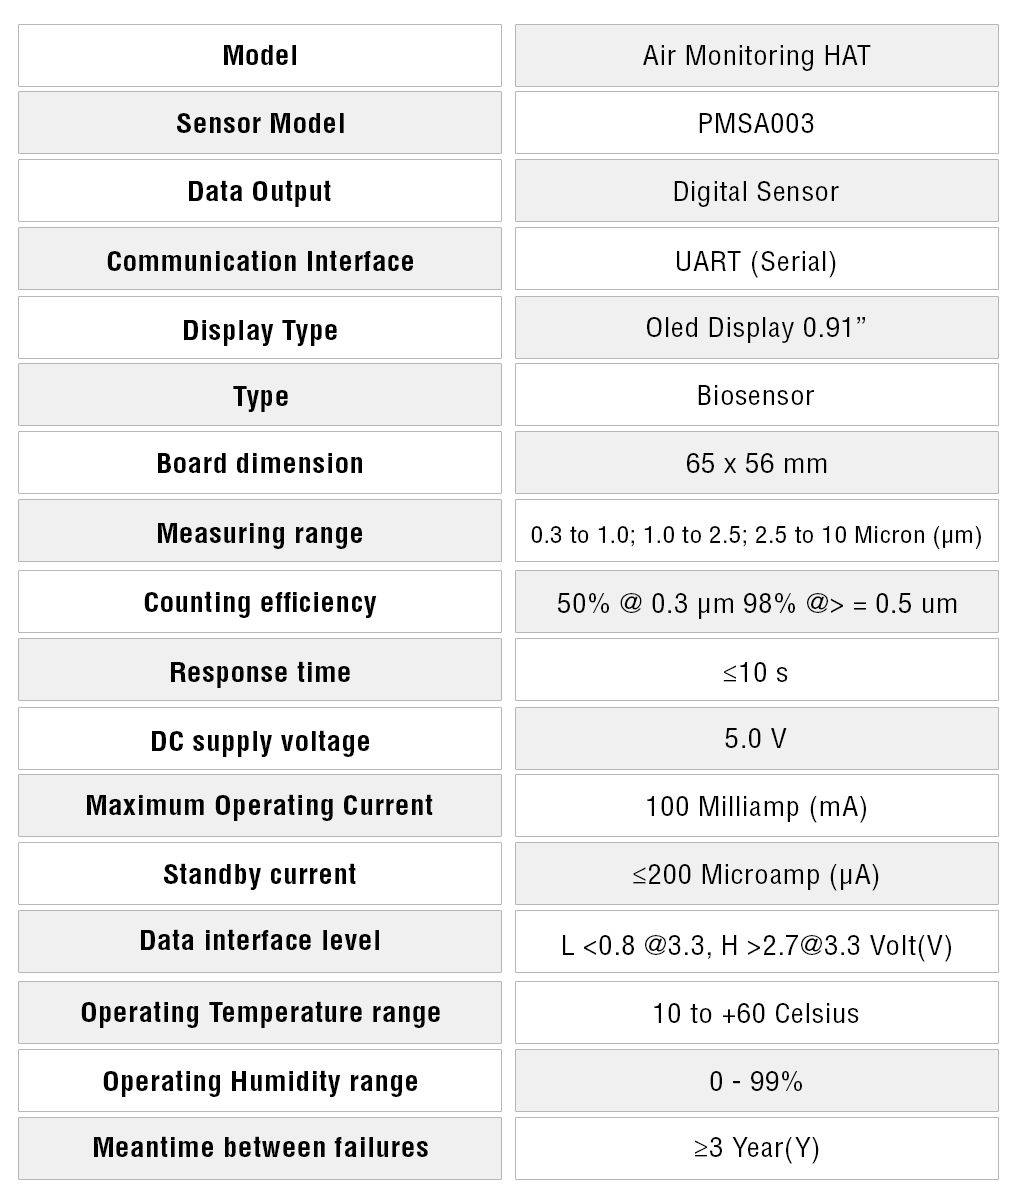 Air Monitoring HAT Specifications